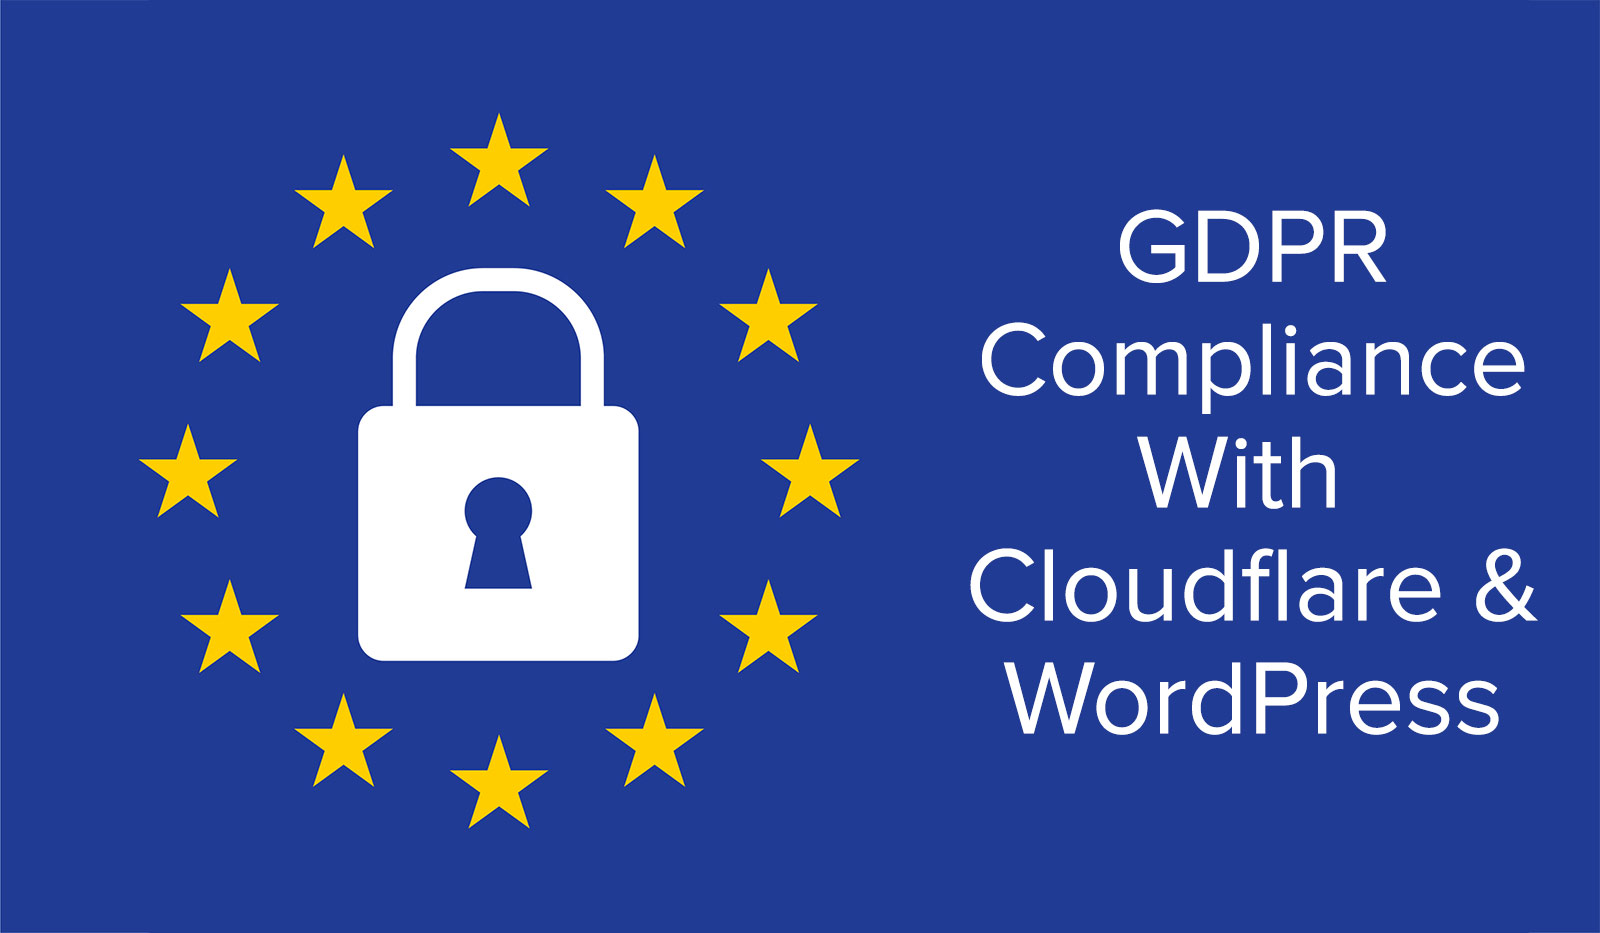 Featured Image GDPR Compliance With Cloudflare & WordPress